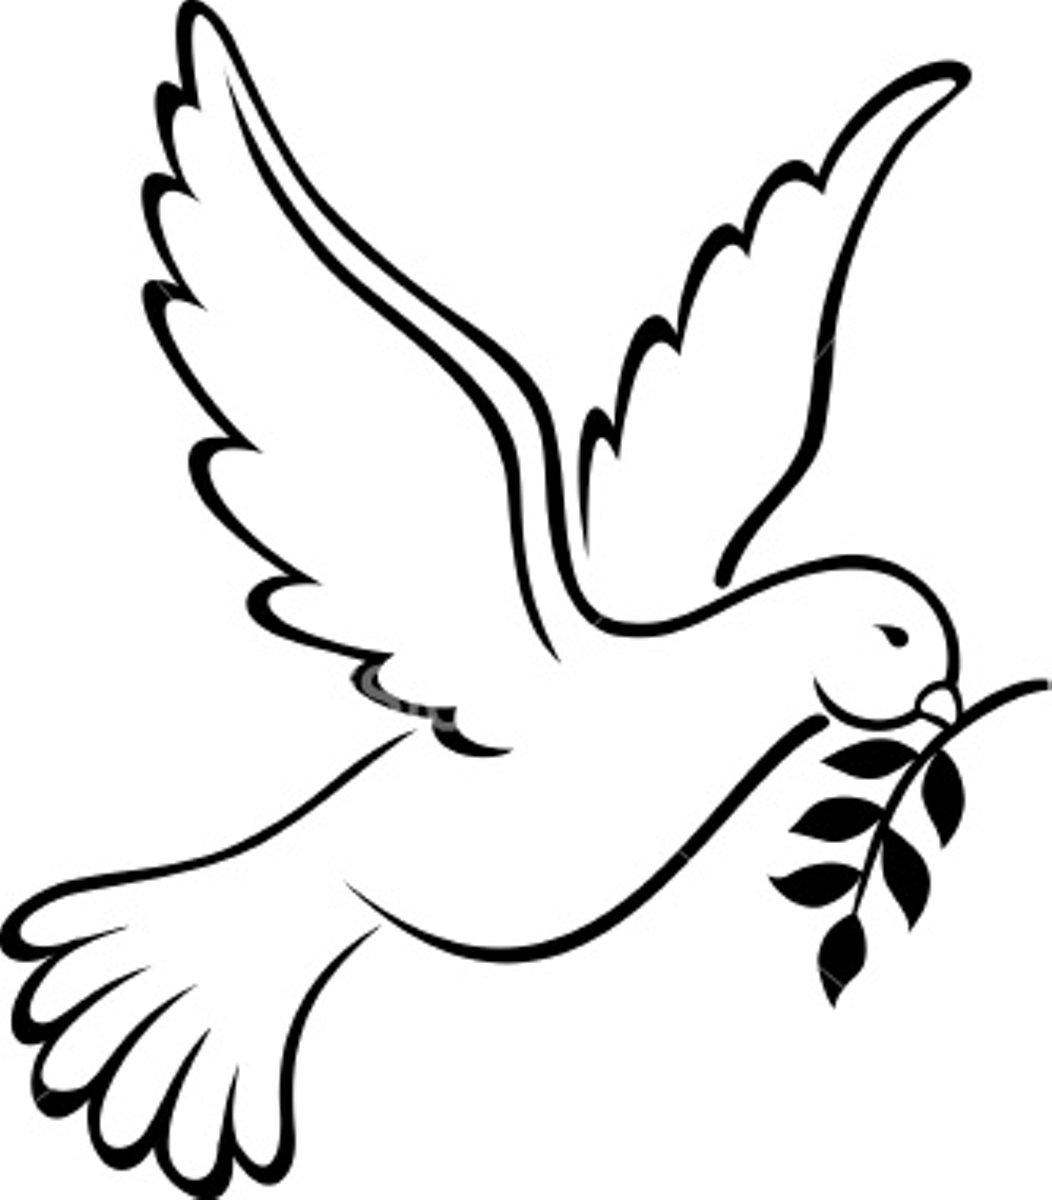 holy spirit dove clipart clipart panda free clipart images rh clipartpanda com doves clipart free dove clipart transparent no background